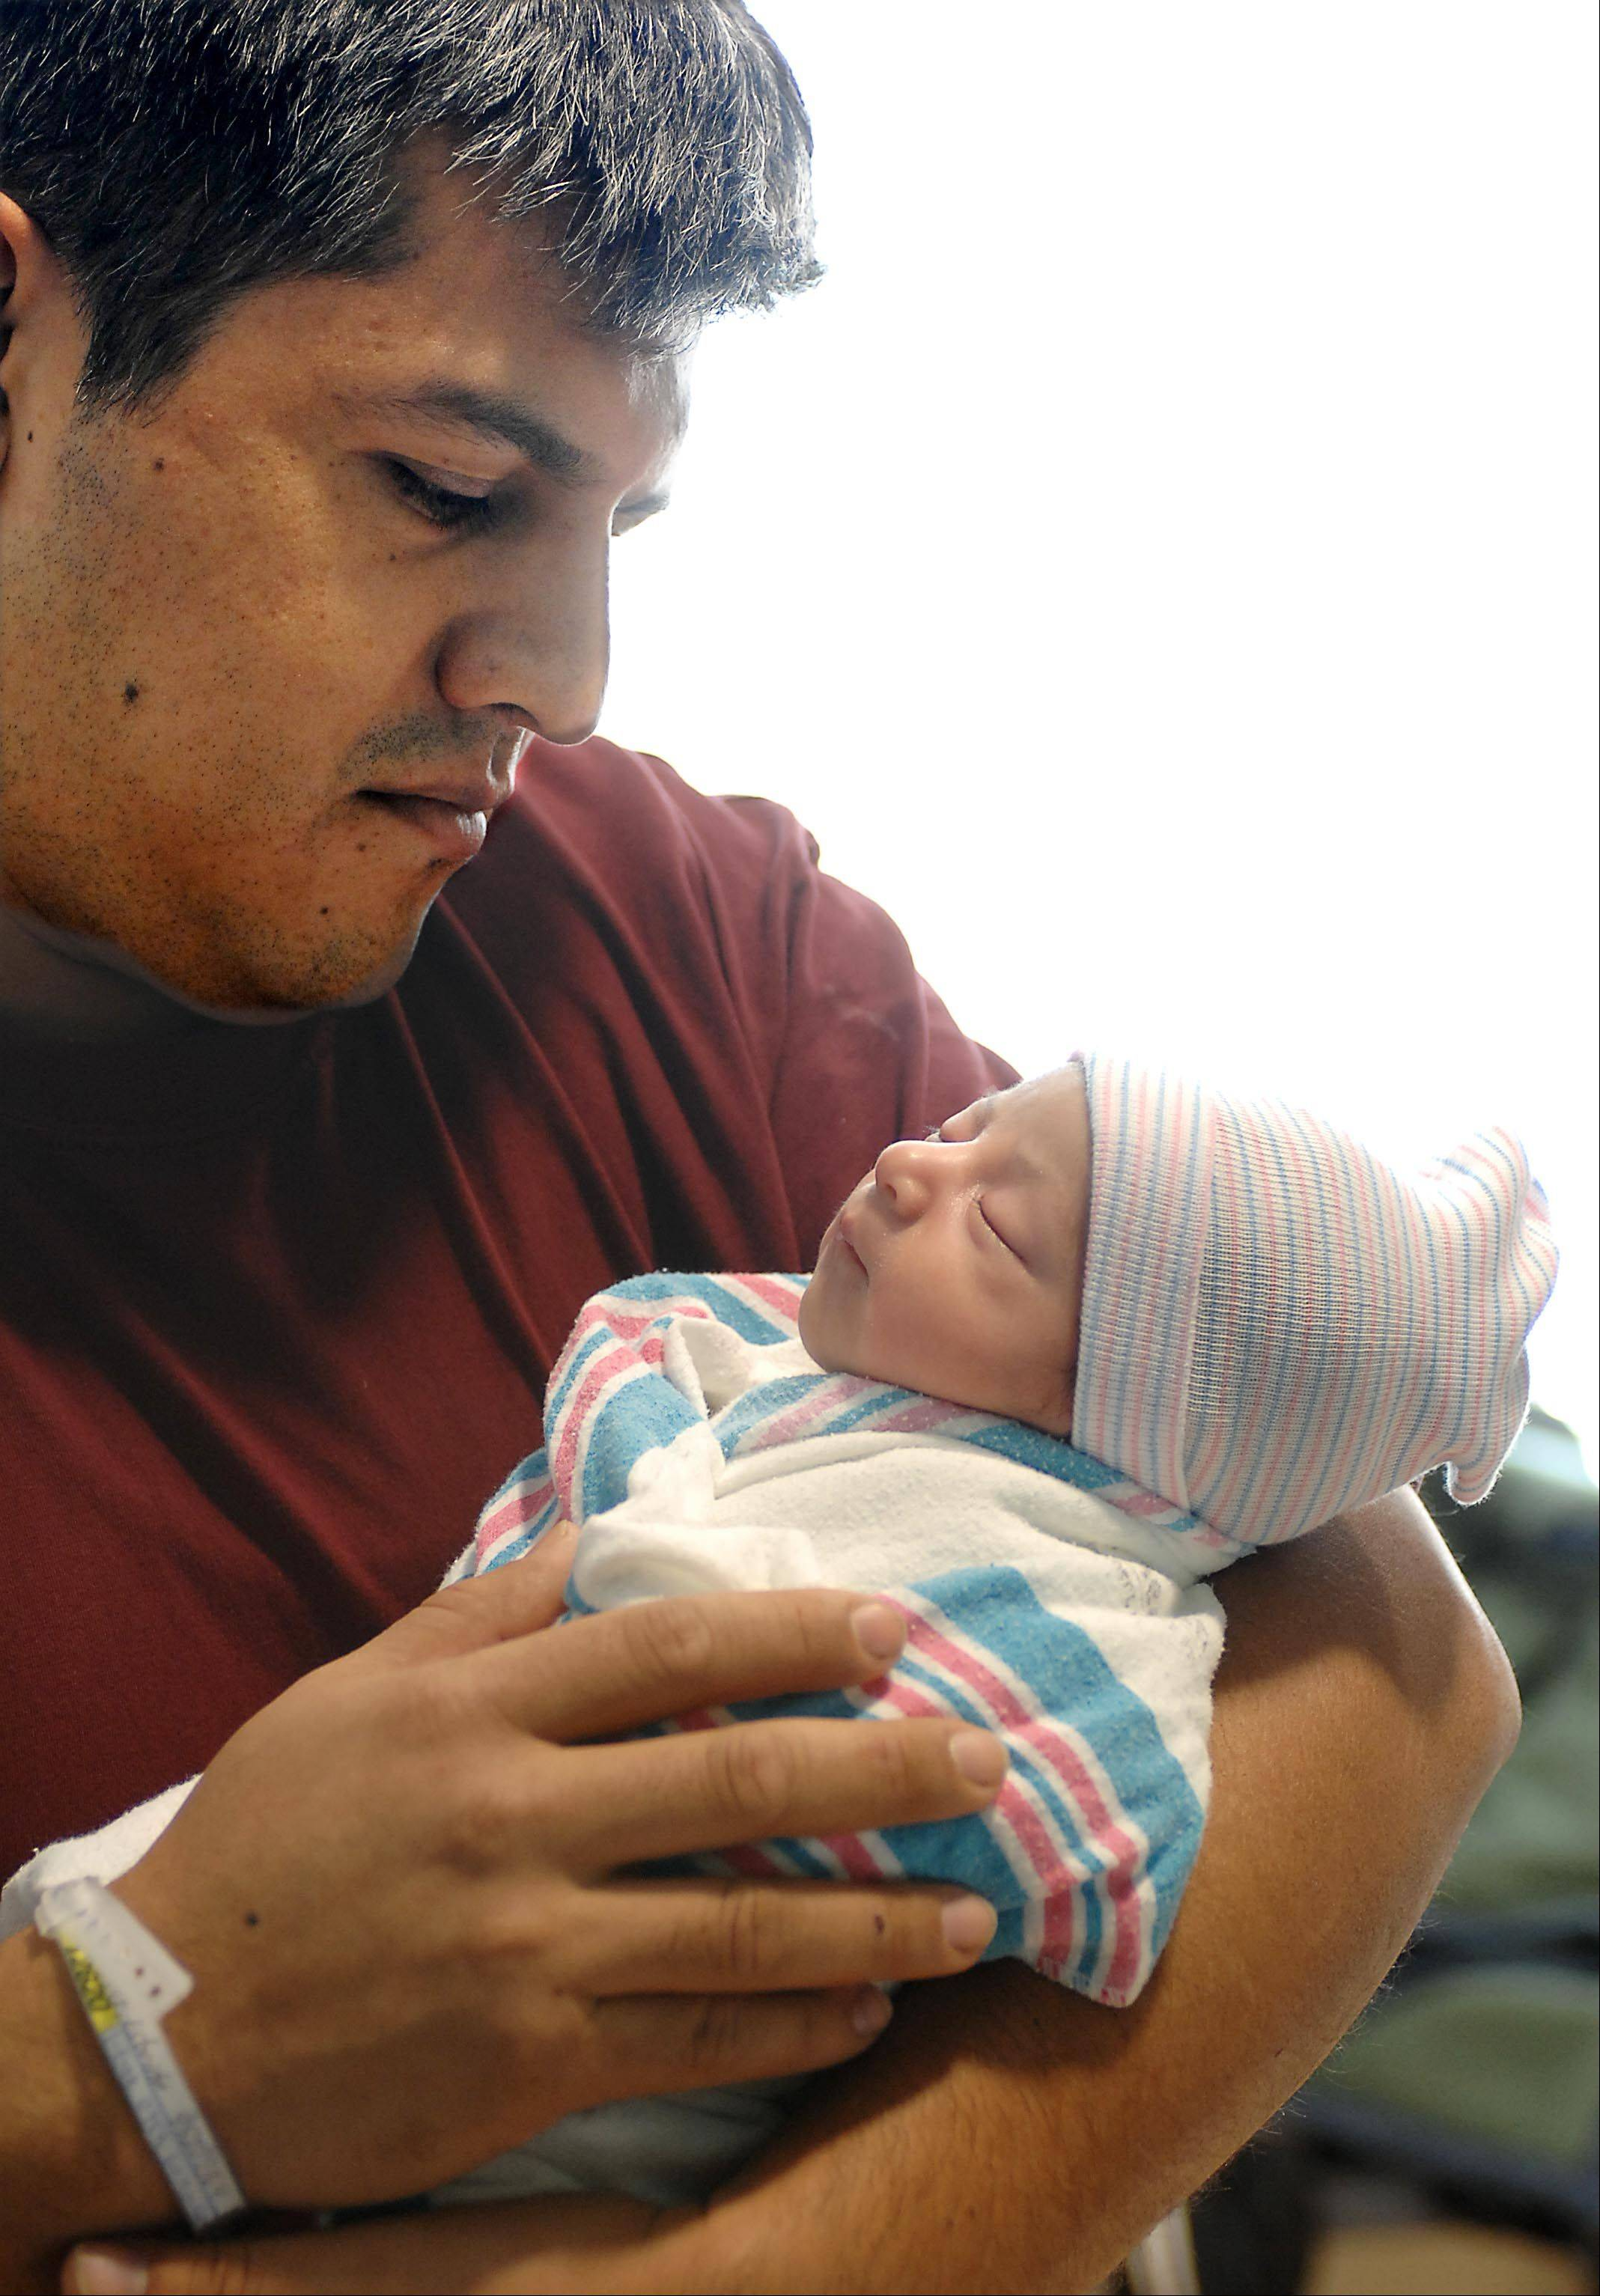 Daniel Hernandez of Algonquin holds his daughter Isabel, the first baby born in Kane County in 2013. He's had some practice: Isabel has three sisters and one brother. She was born at 8:43 a.m. Jan. 1 at Sherman Hospital in Elgin.